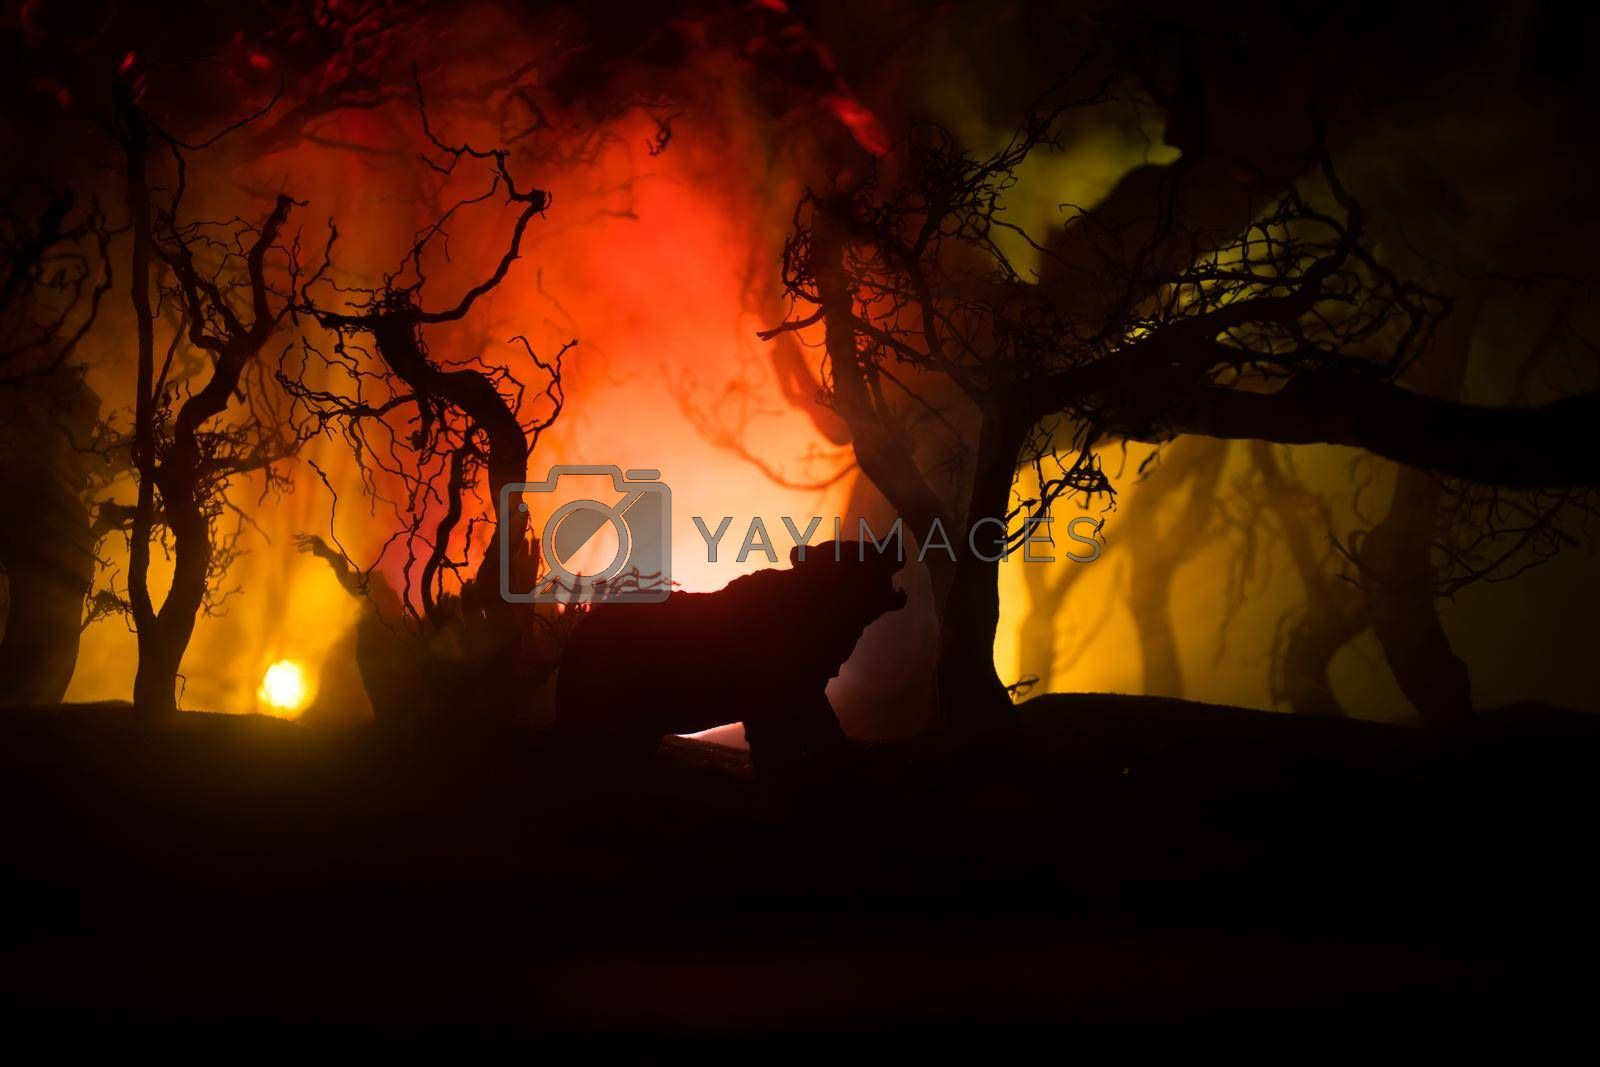 Horror view of big bear in dead forest at night. Angry bear behind the fire cloudy sky. The silhouette of a bear in foggy forest dark background